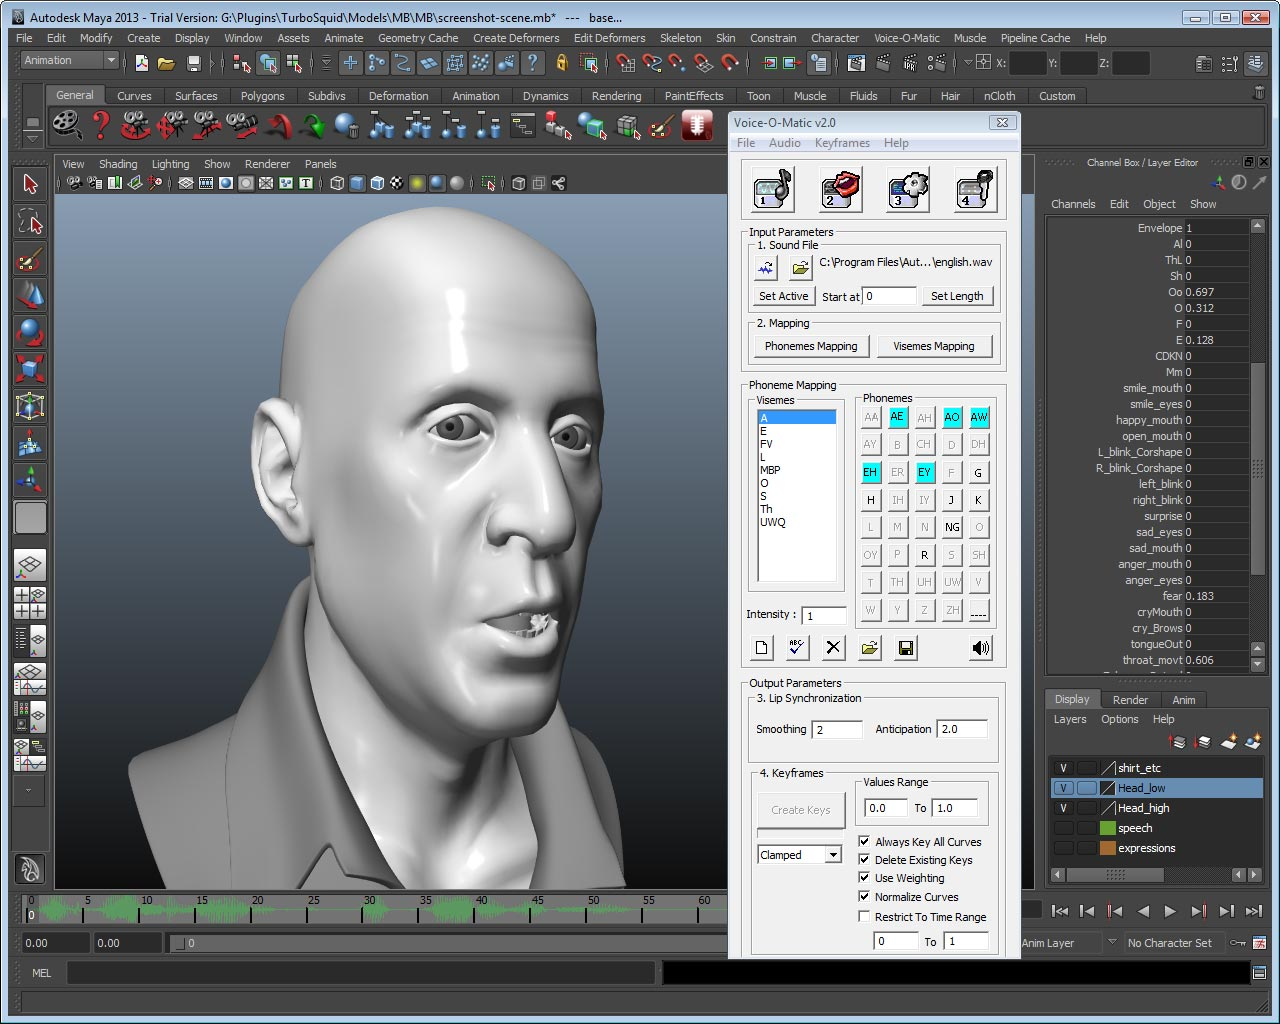 Di-O-Matic releases Voice-O-Matic v2 for Maya